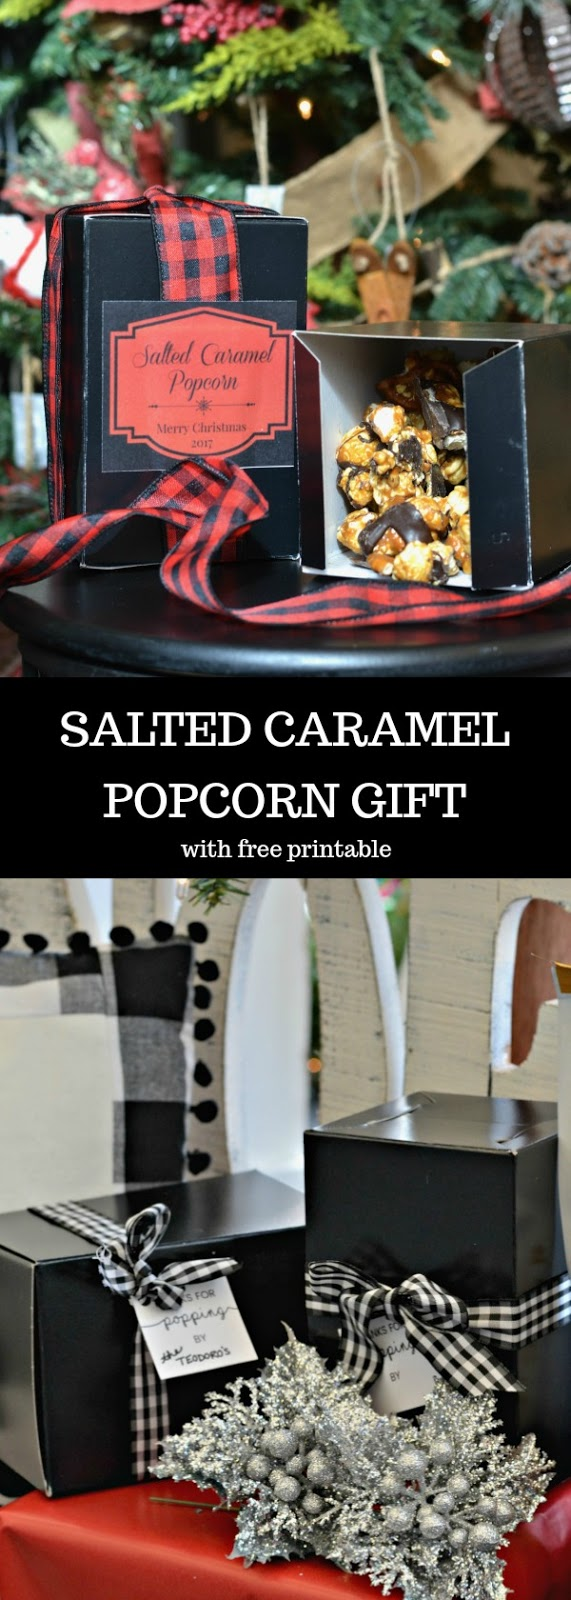 a great, sort of homemade gift that is inexpensive to give to your family and friends